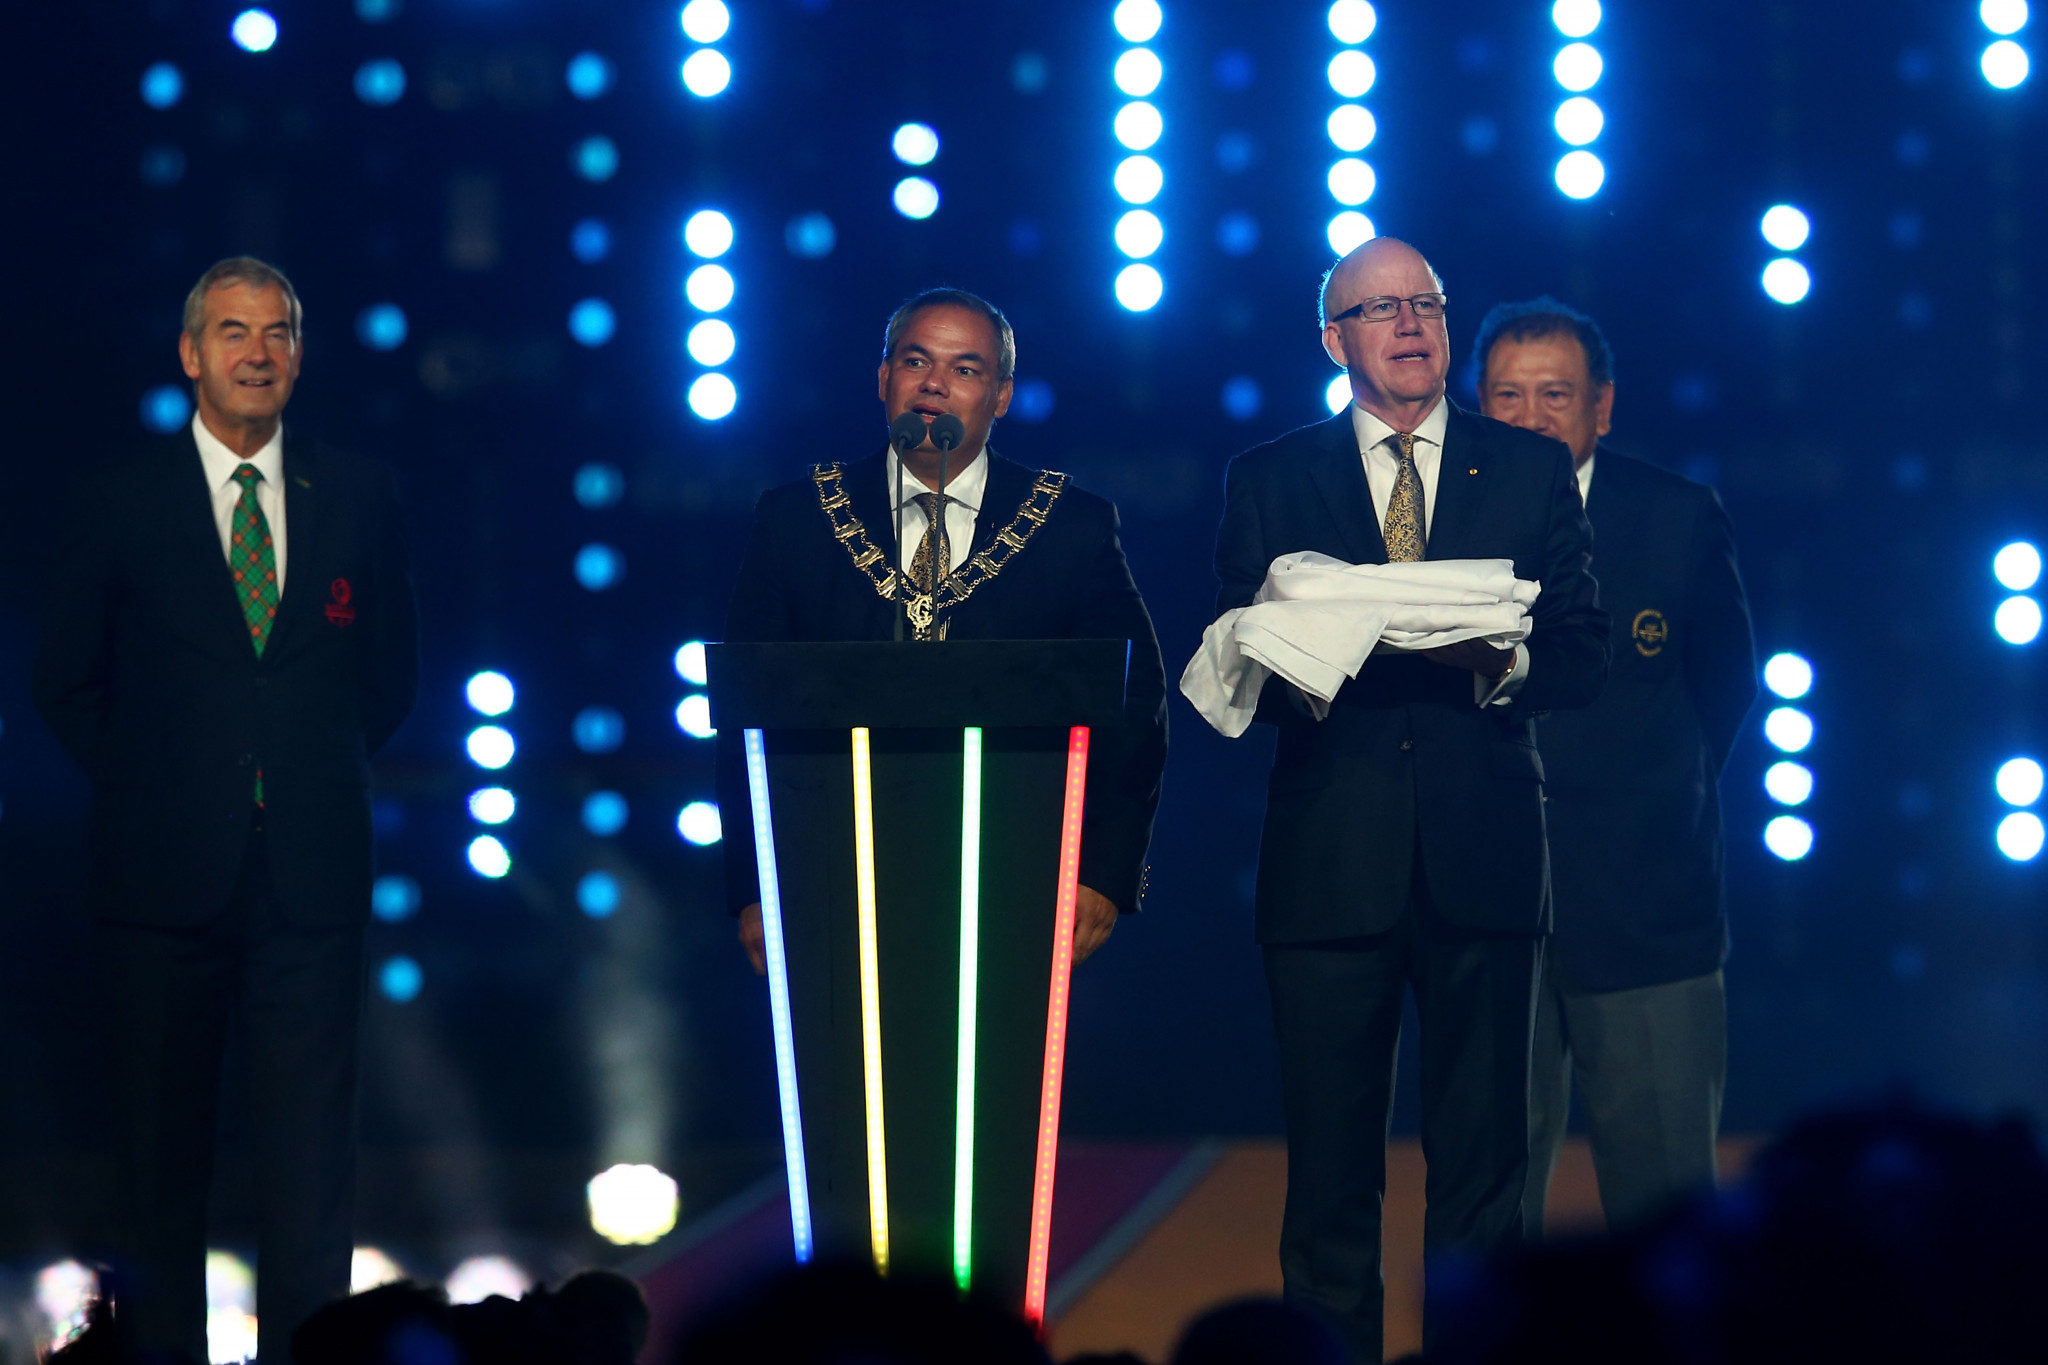 Mayor of the City of Gold Coast, Tom Tate speaks during the Closing Ceremony for the Glasgow 2014 Commonwealth Games at Hampden Park ©Getty Images